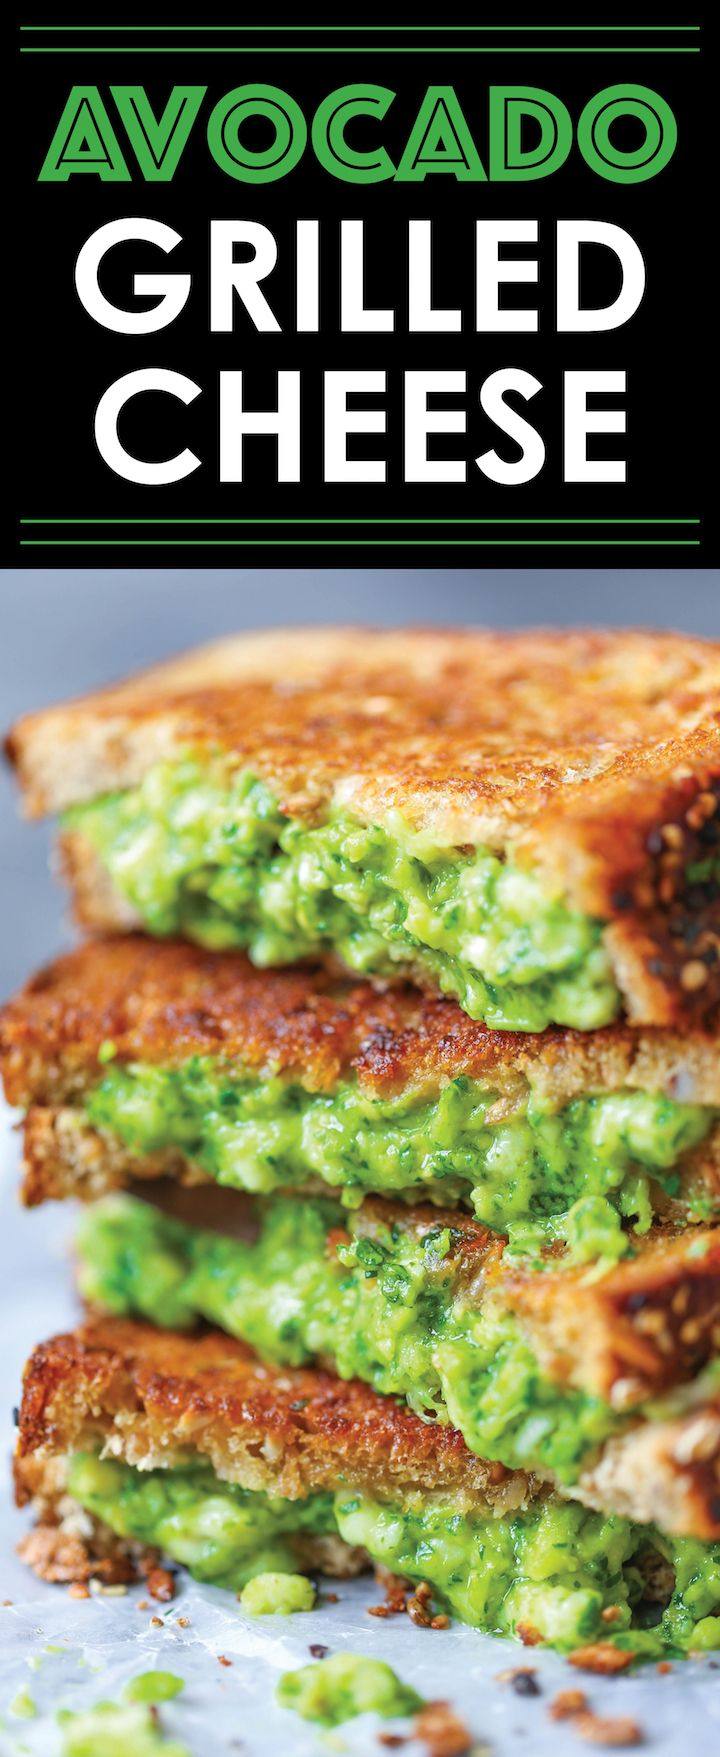 This recipe for Avocado Grilled Cheese is so buttery and just downright amazing, oozing with avocado cheesy goodness. It's the best grilled cheese ever, hands down!